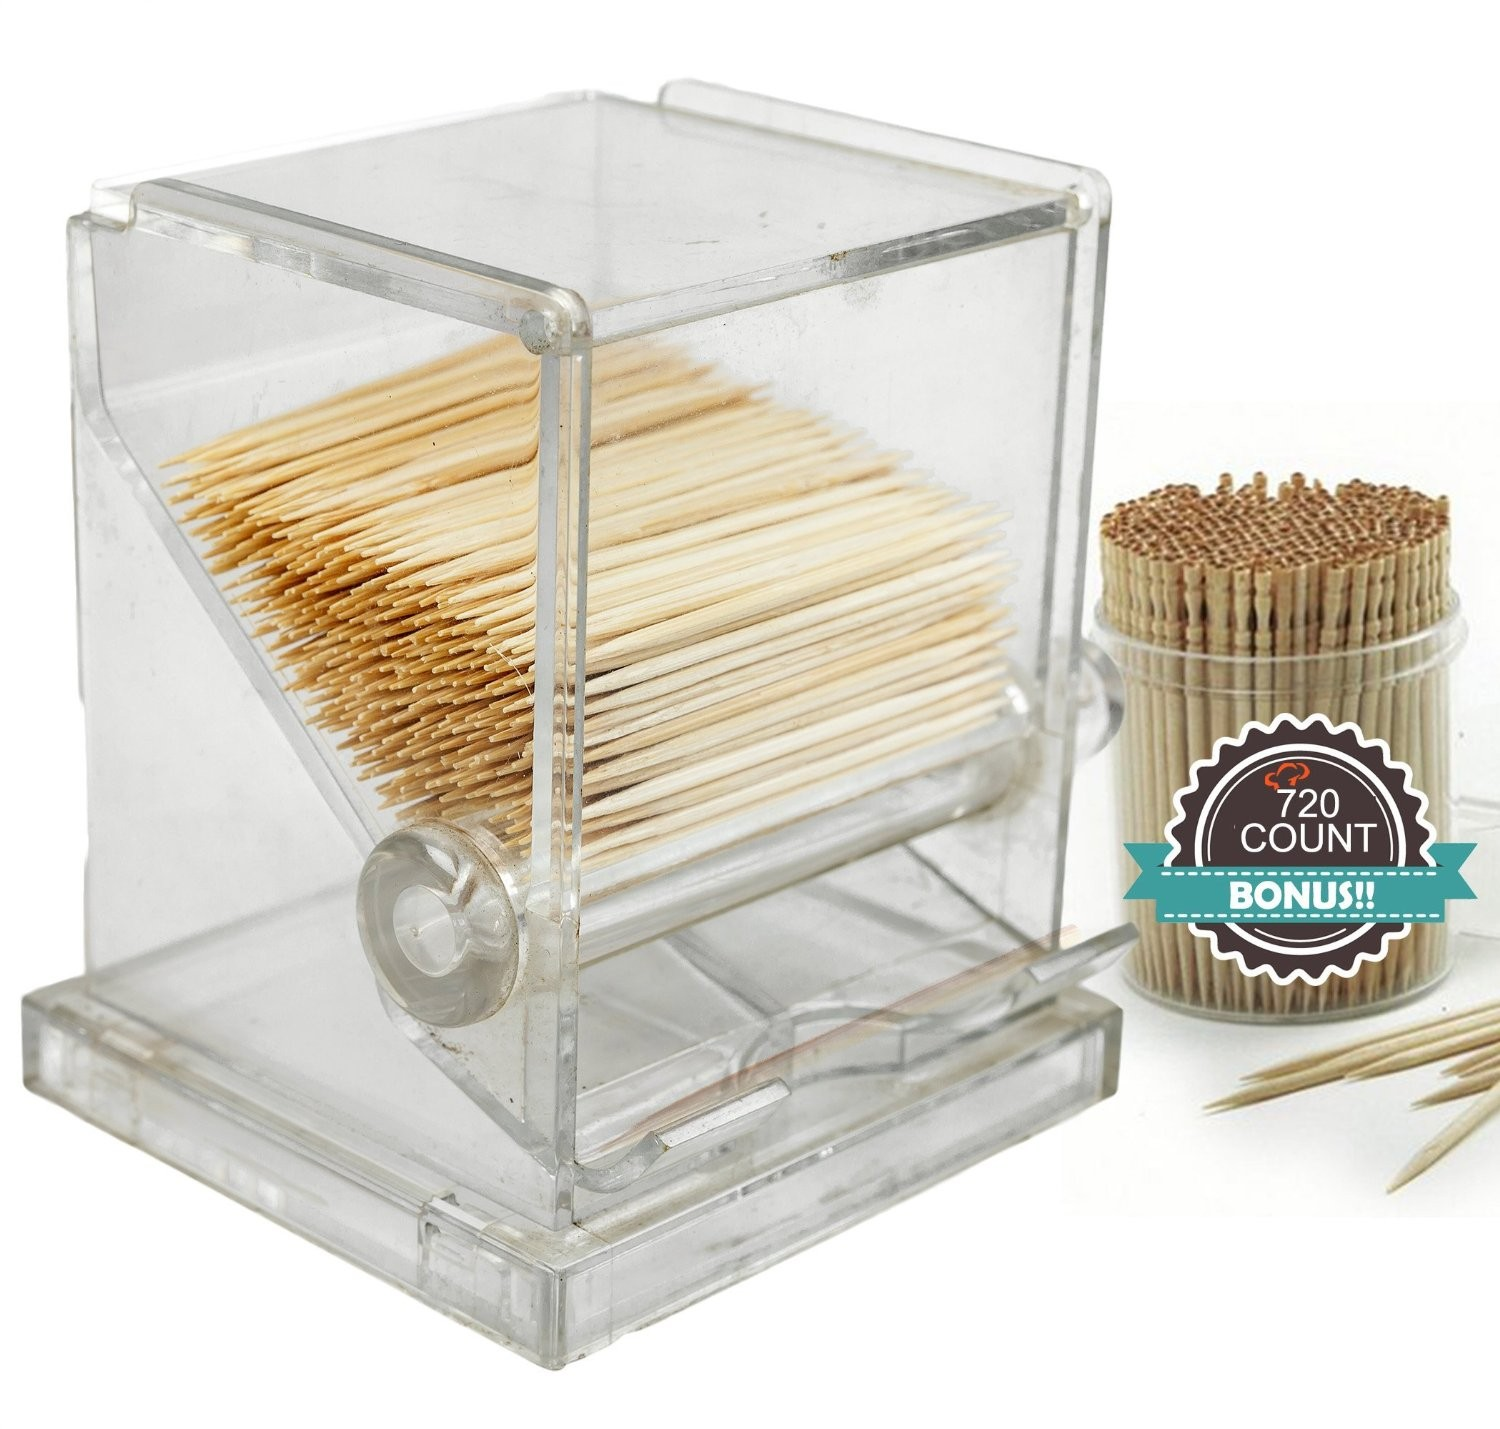 TigerChef Acrylic Toothpick Dispenser with 720 Toothpicks